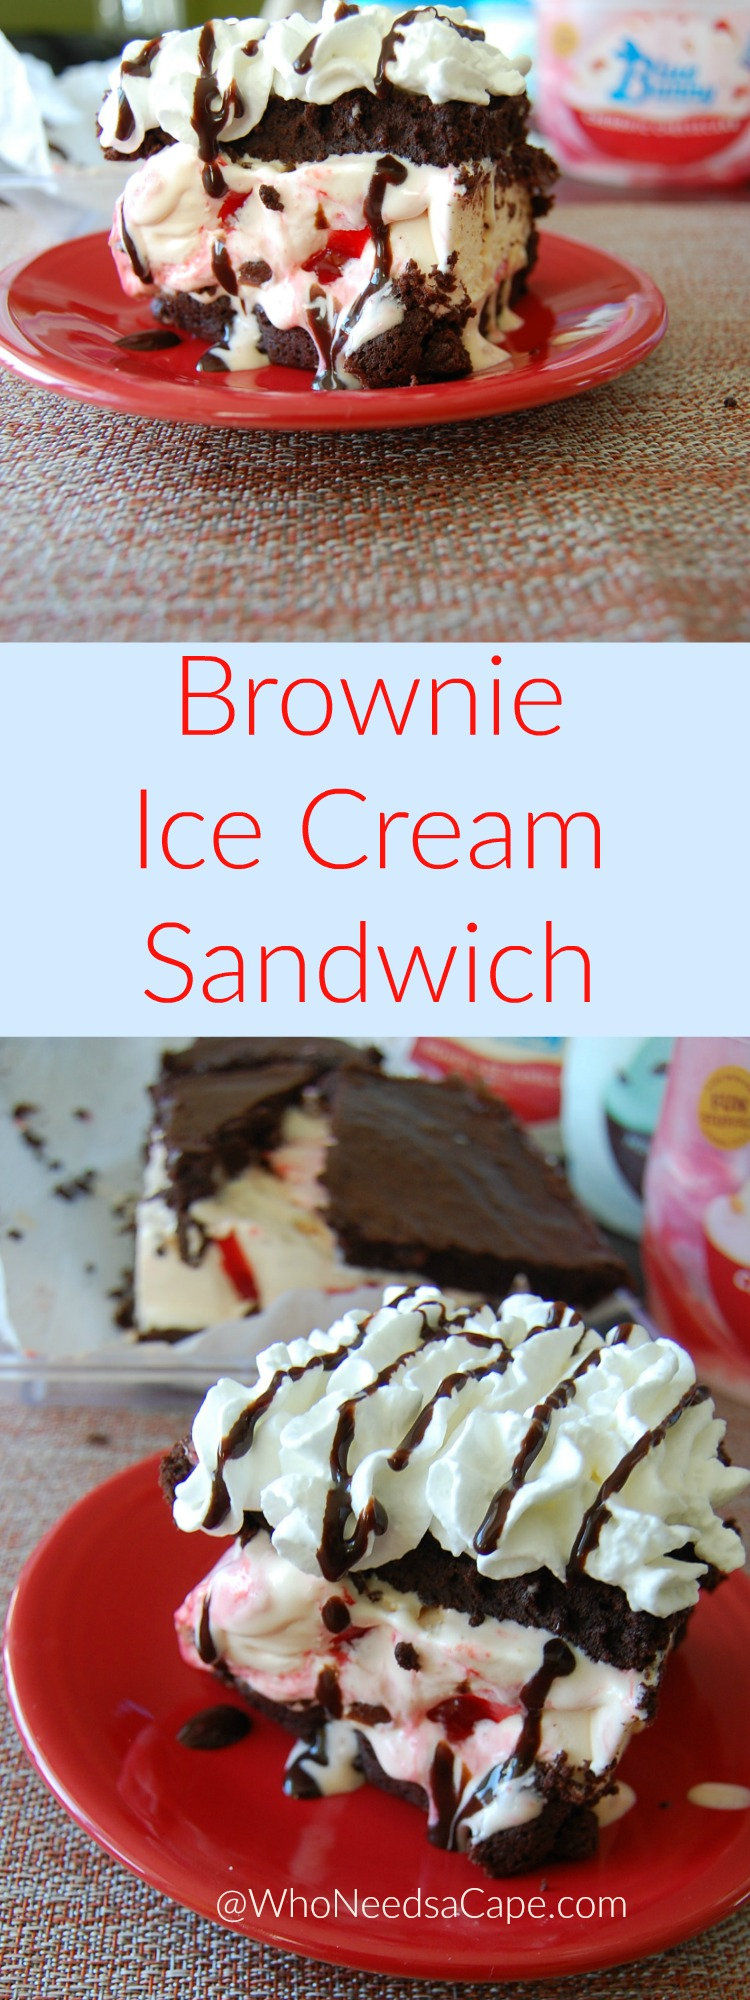 Brownie Ice Cream Sandwiches are a decadent yet oh so simple dessert treat perfect for hot weather enjoyment. Great for chocolate lovers!